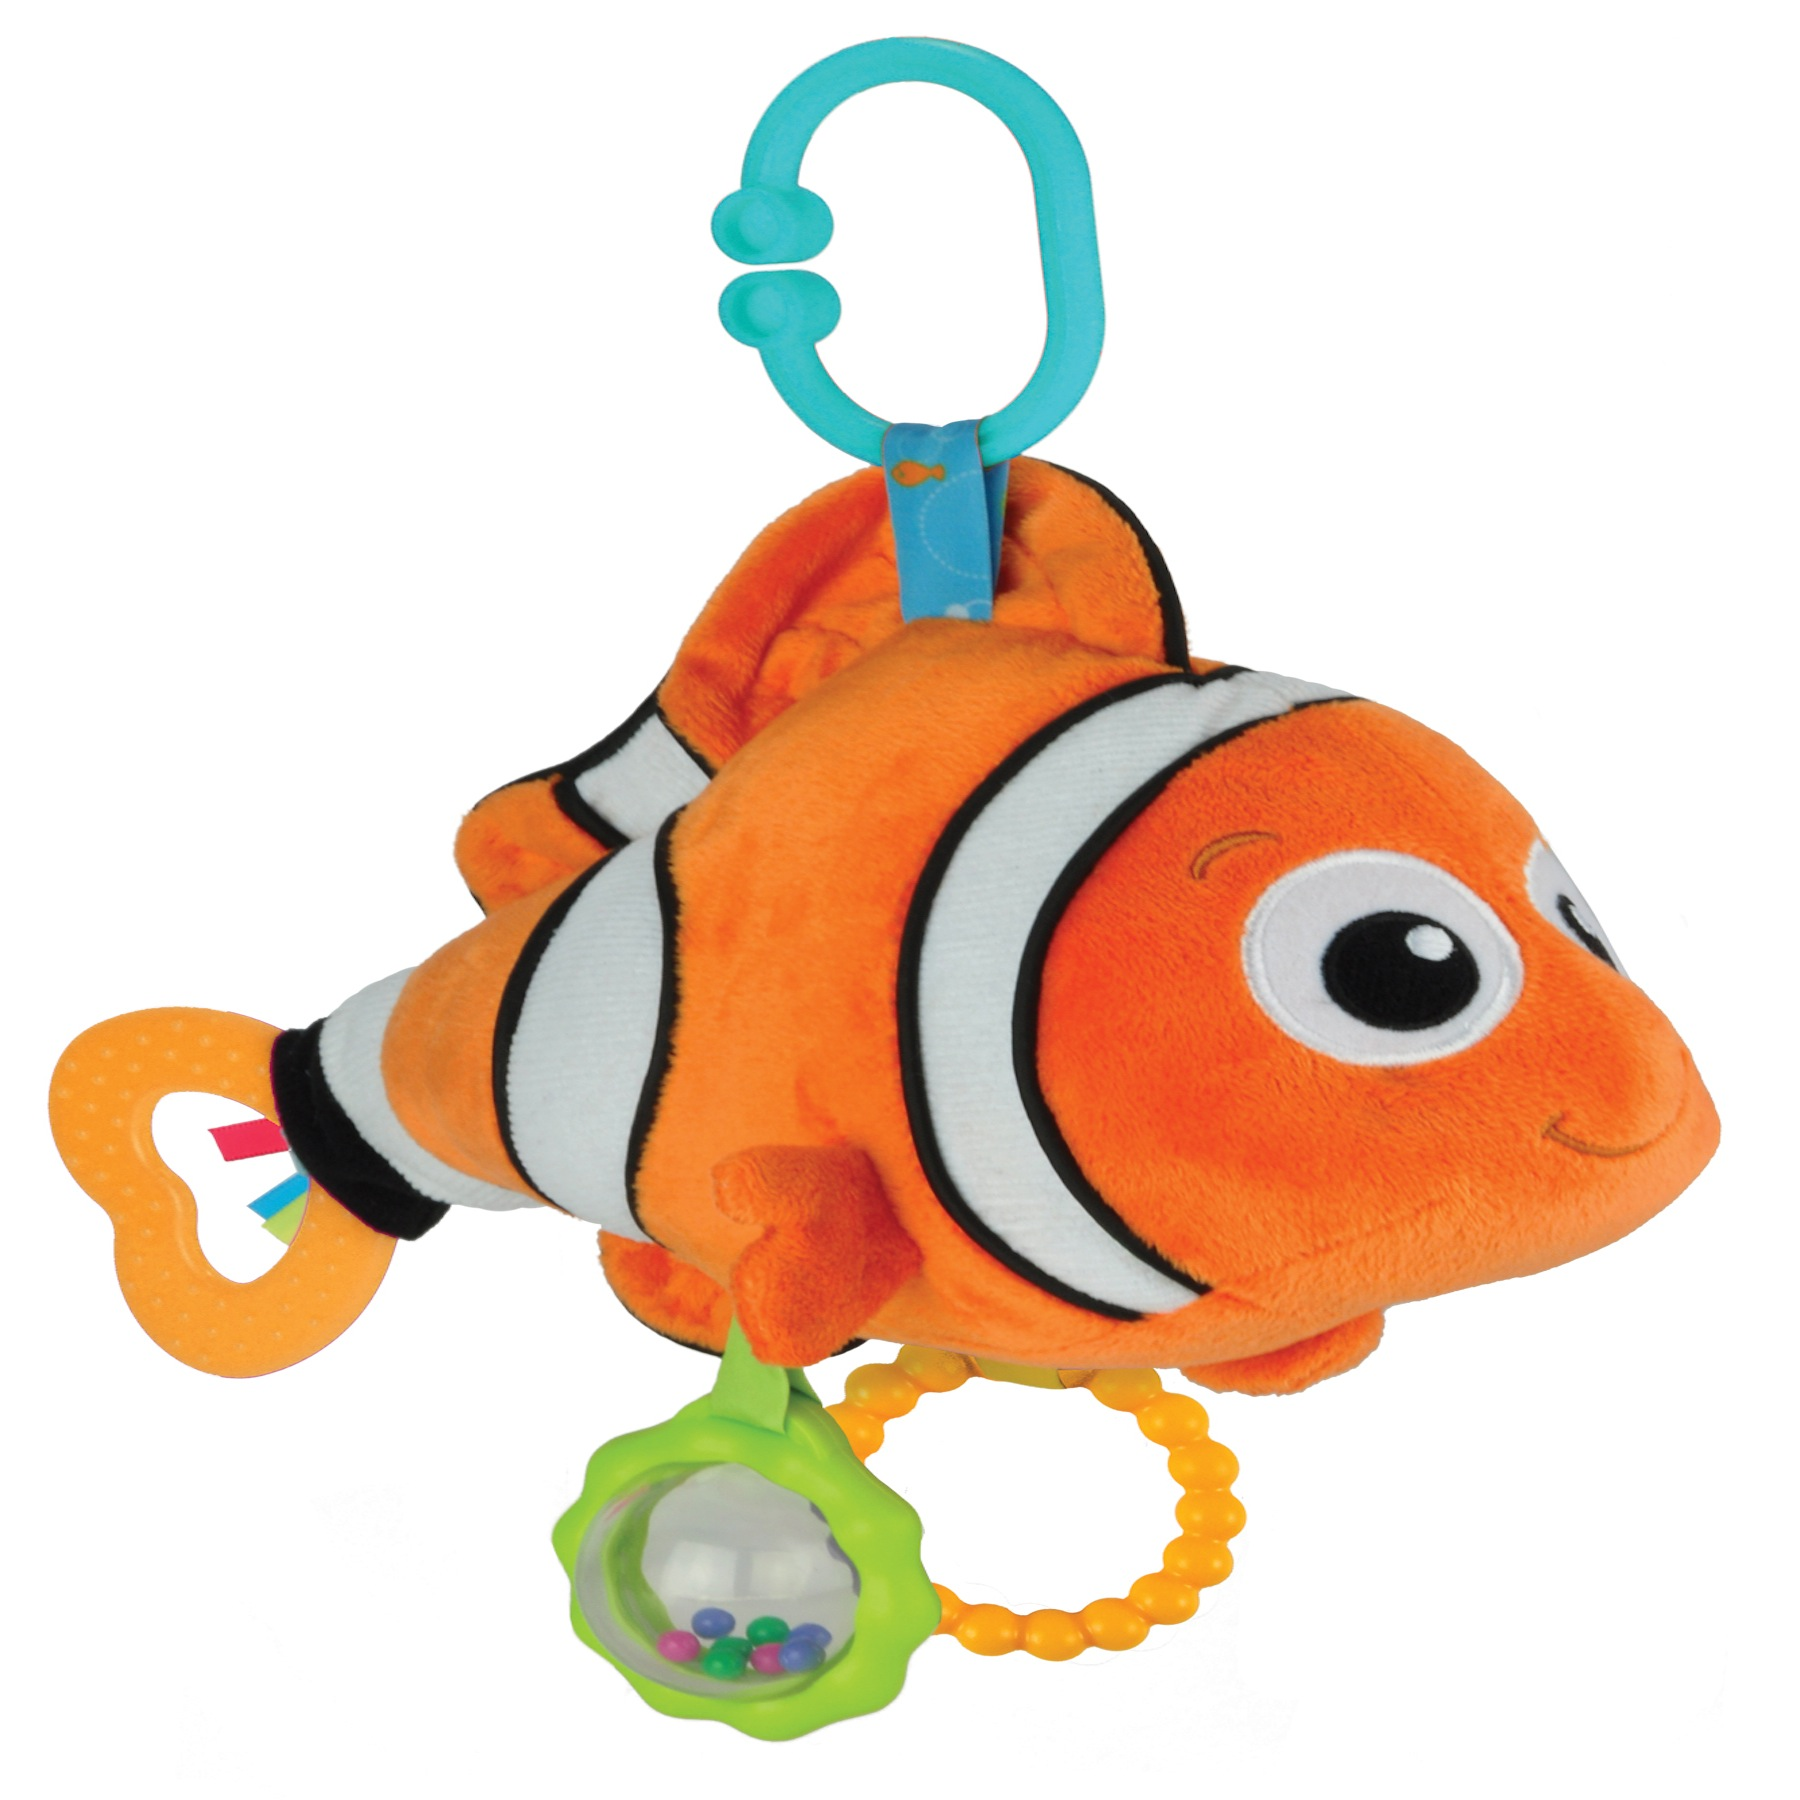 Images Of Baby Toys - ClipArt Best (1800 x 1800 Pixel)